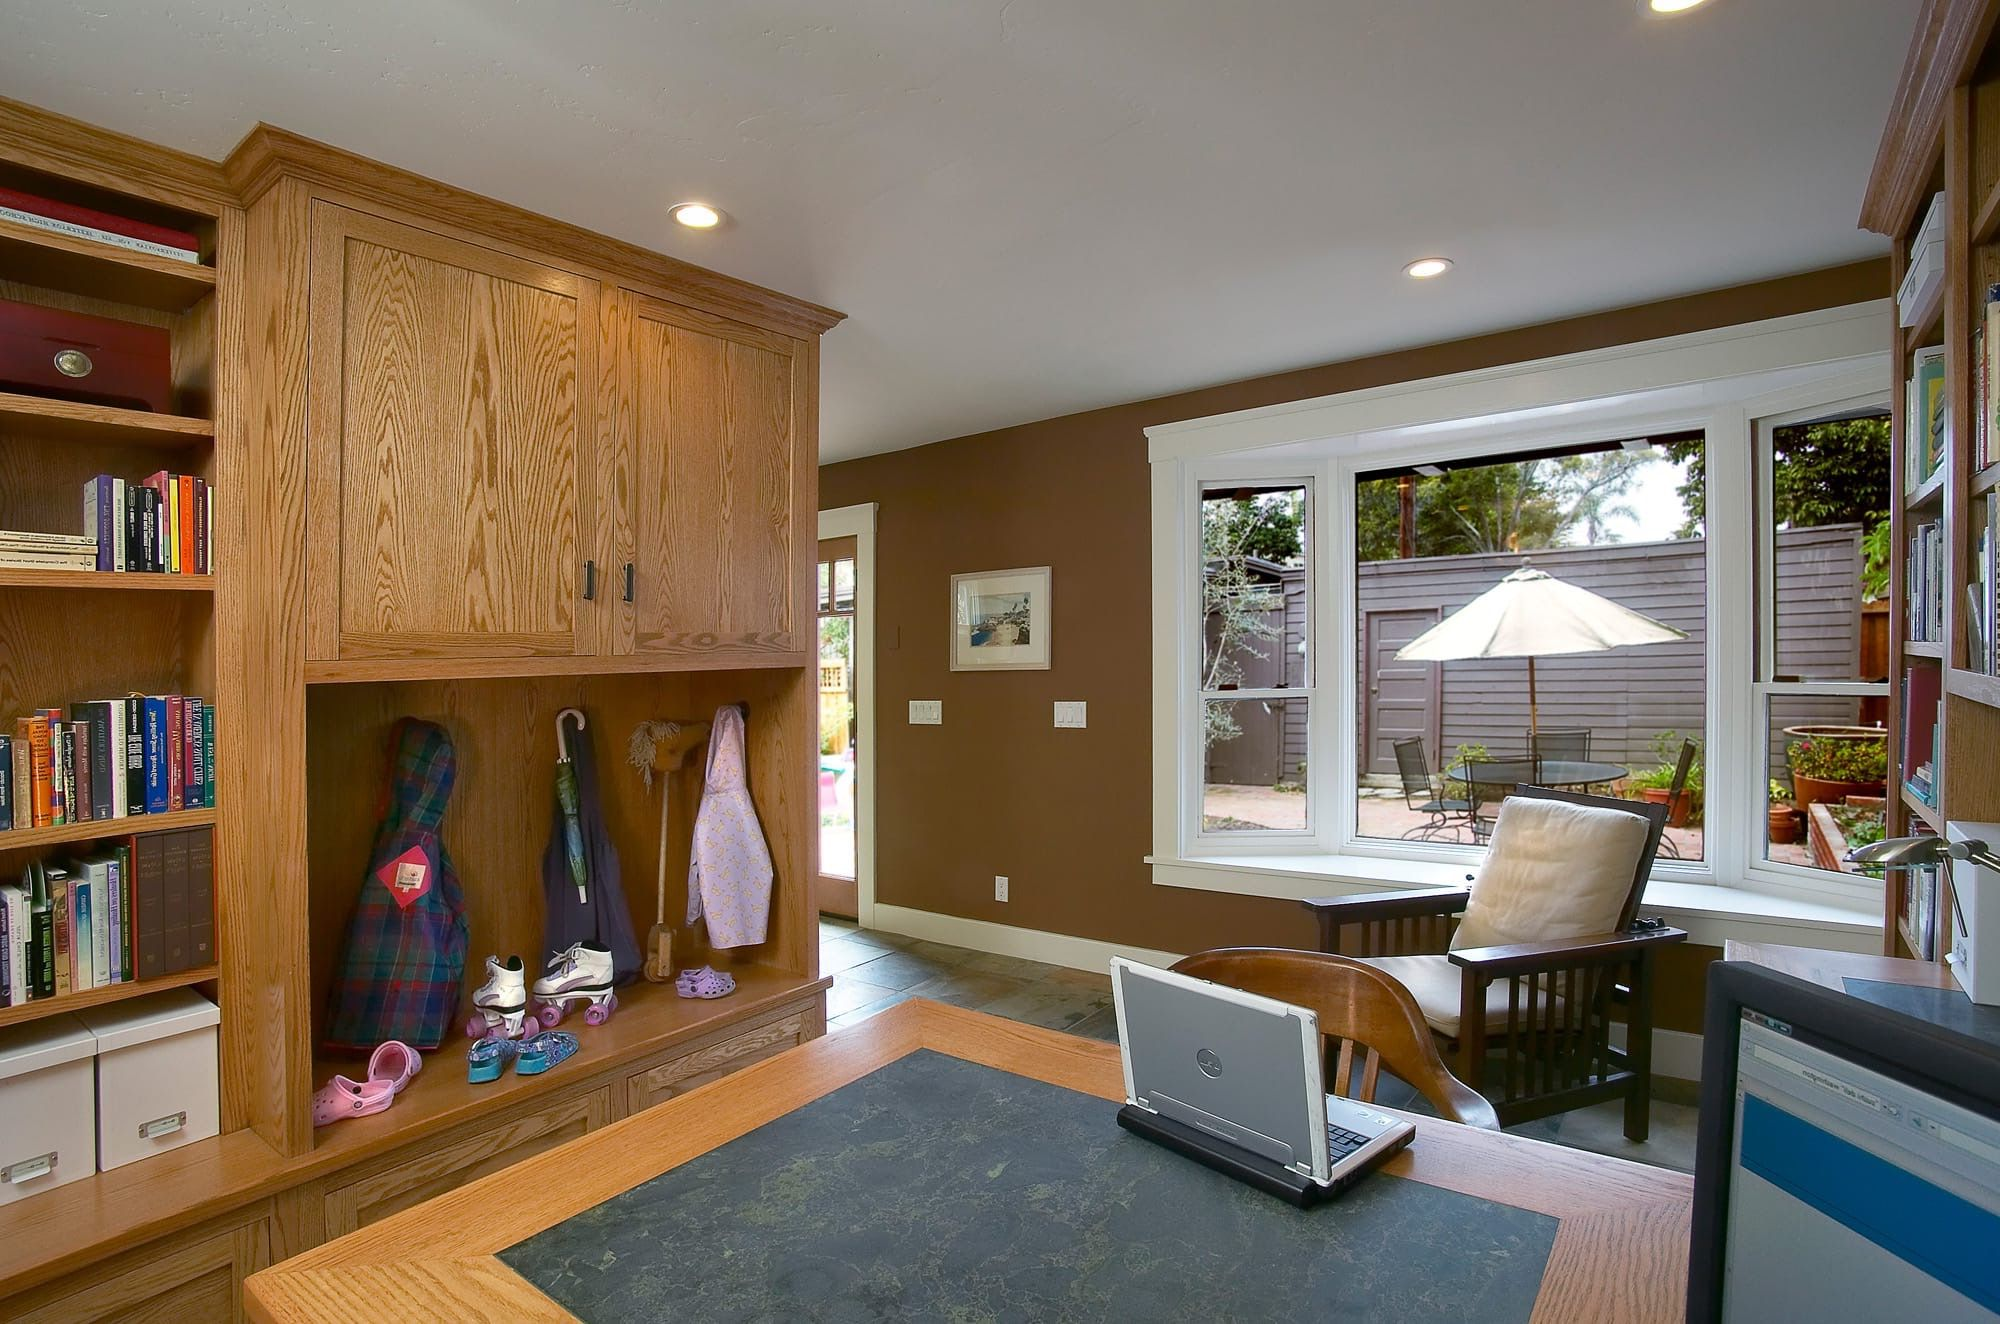 Modern Craftsman Home Office →  https://wp.me/p8owWu-6D0 -